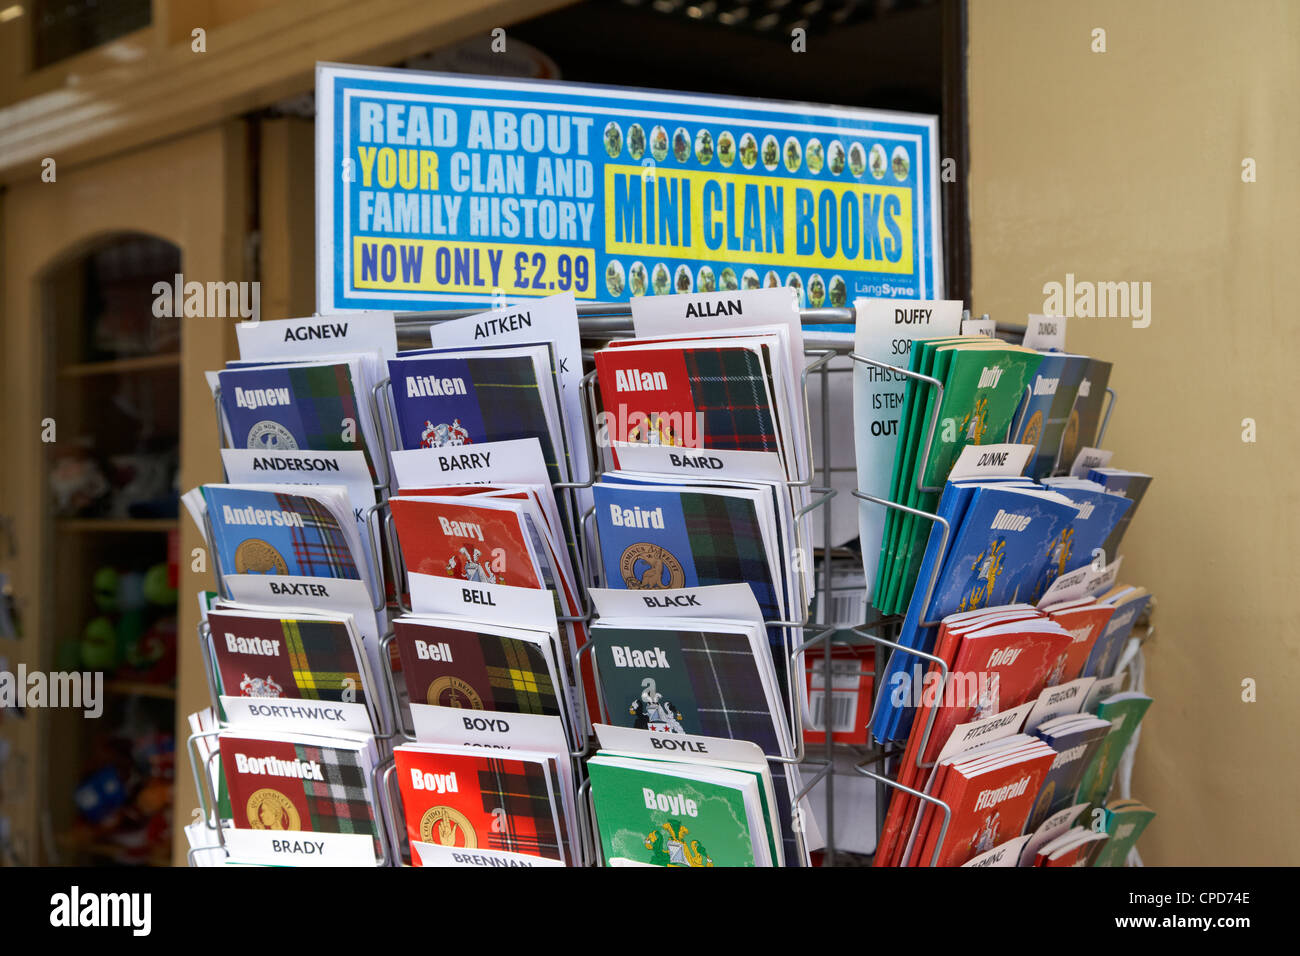 selection of scottish and irish clan history books in a shop